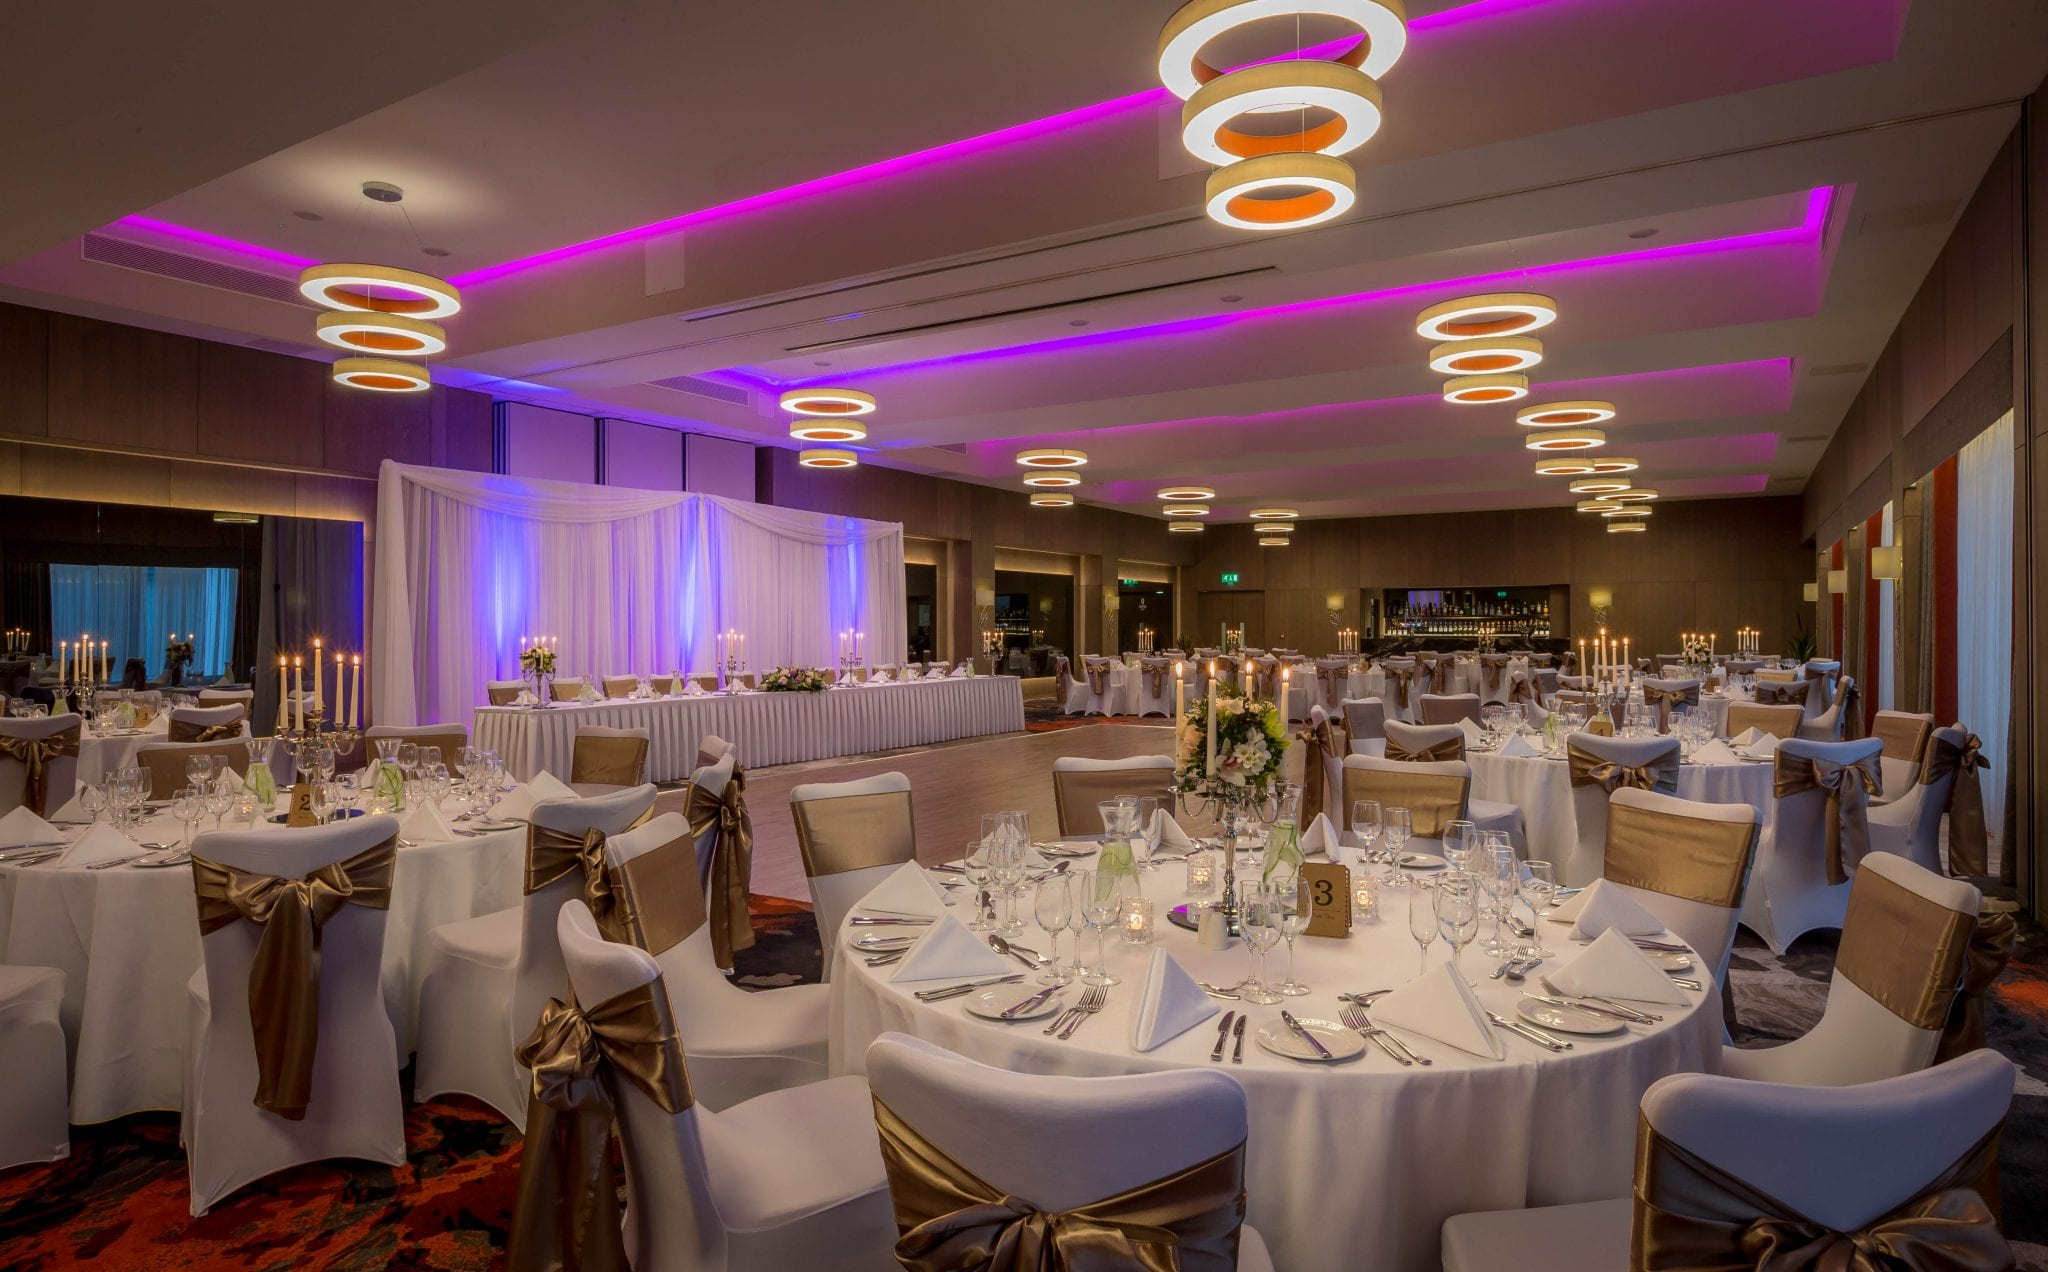 Clayton_Hotel_Chiswick_ballroom_set_for_wedding_or_gala_dinner